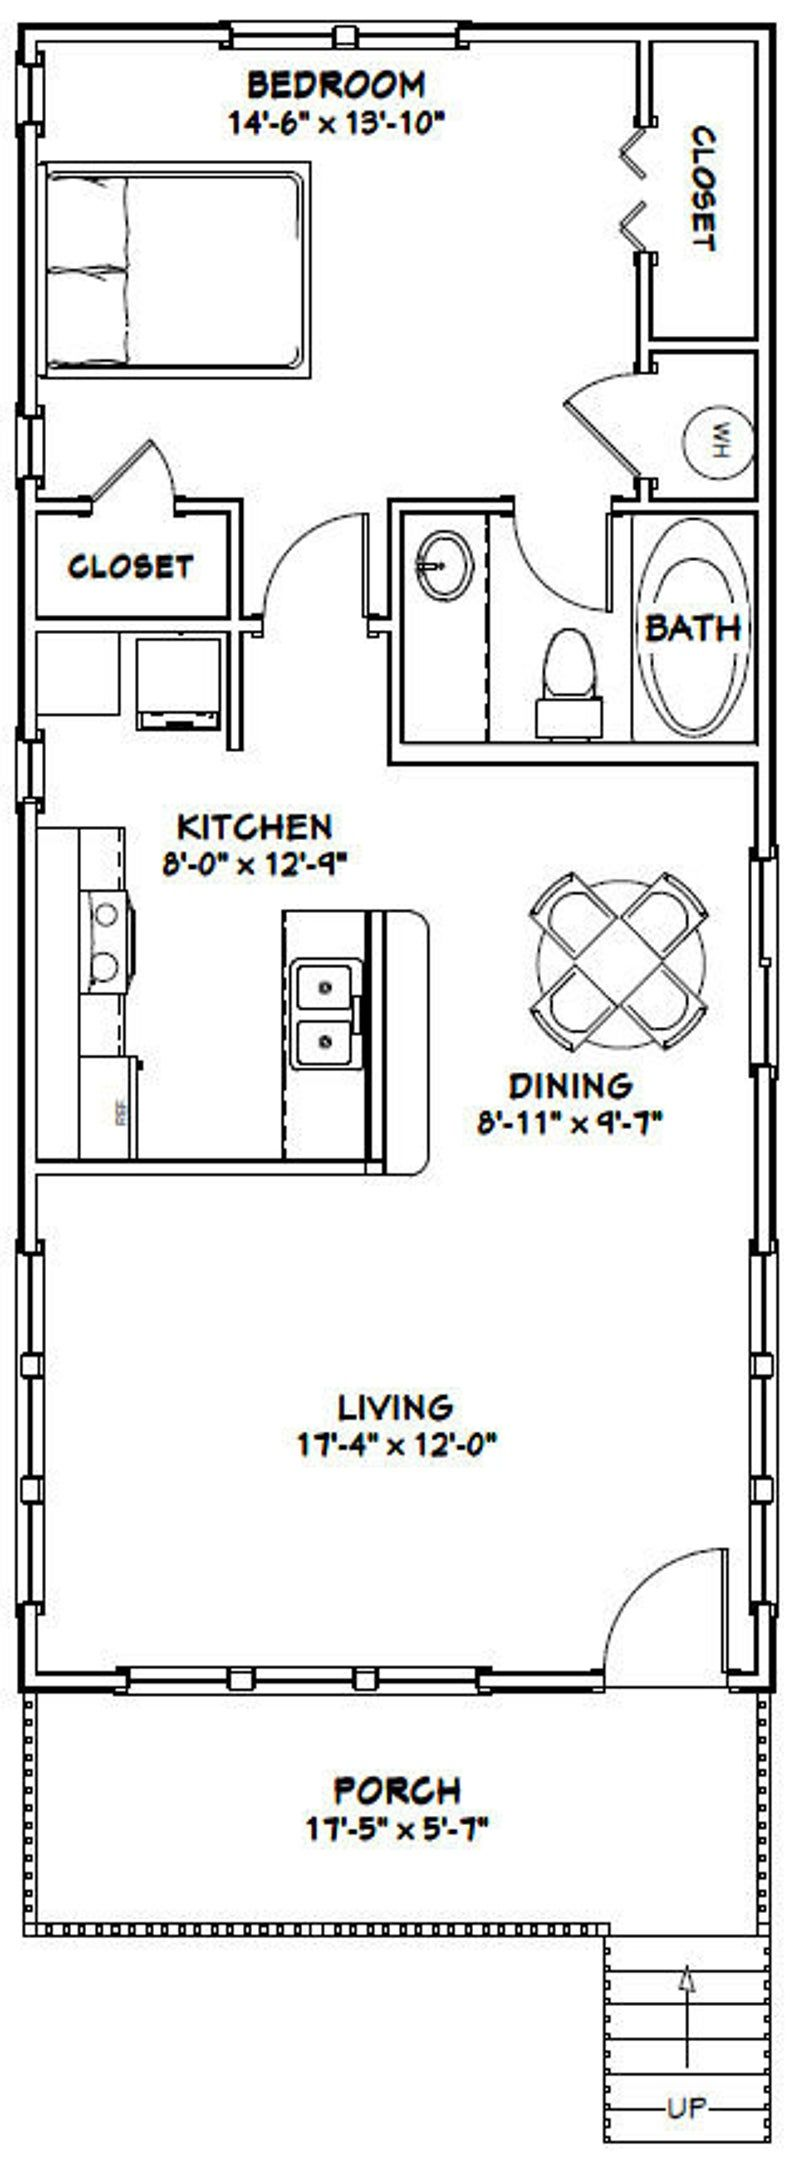 18x40 House 1 Bedroom 1 Bath 720 sq ft PDF Floor Plan Instant Download Model 5I